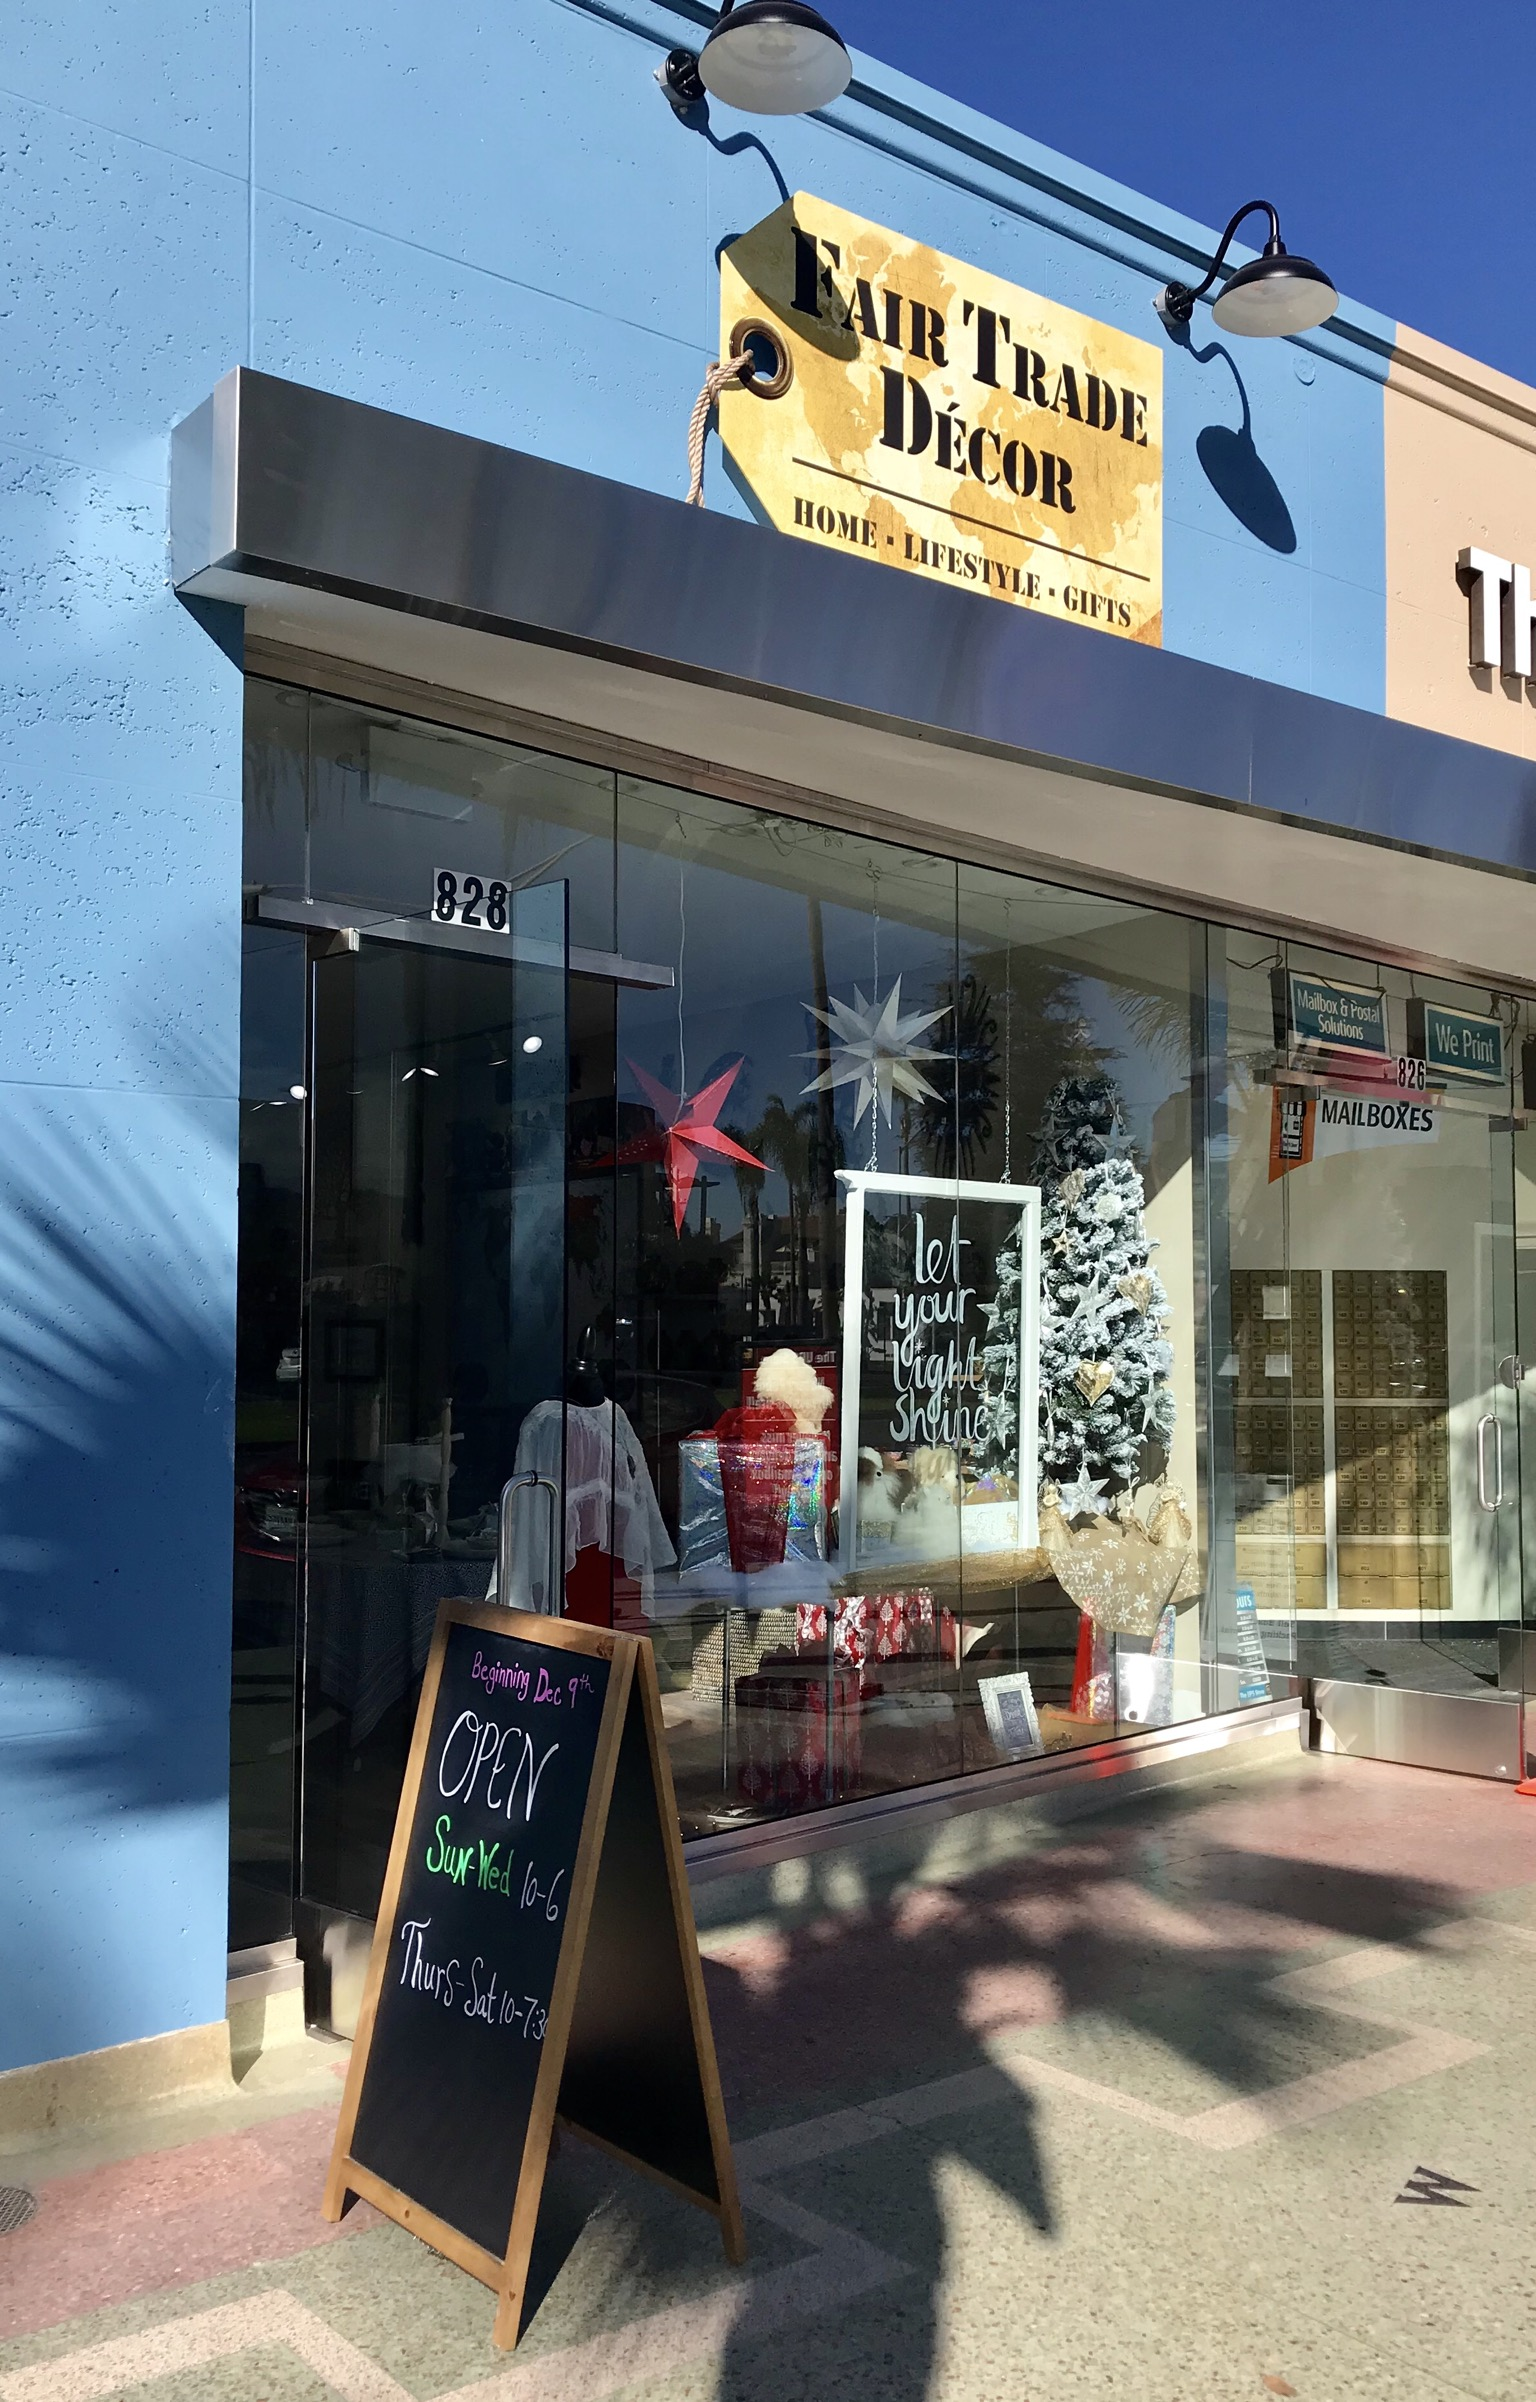 Best Fair Trade Decor Opens In Coronado This Month